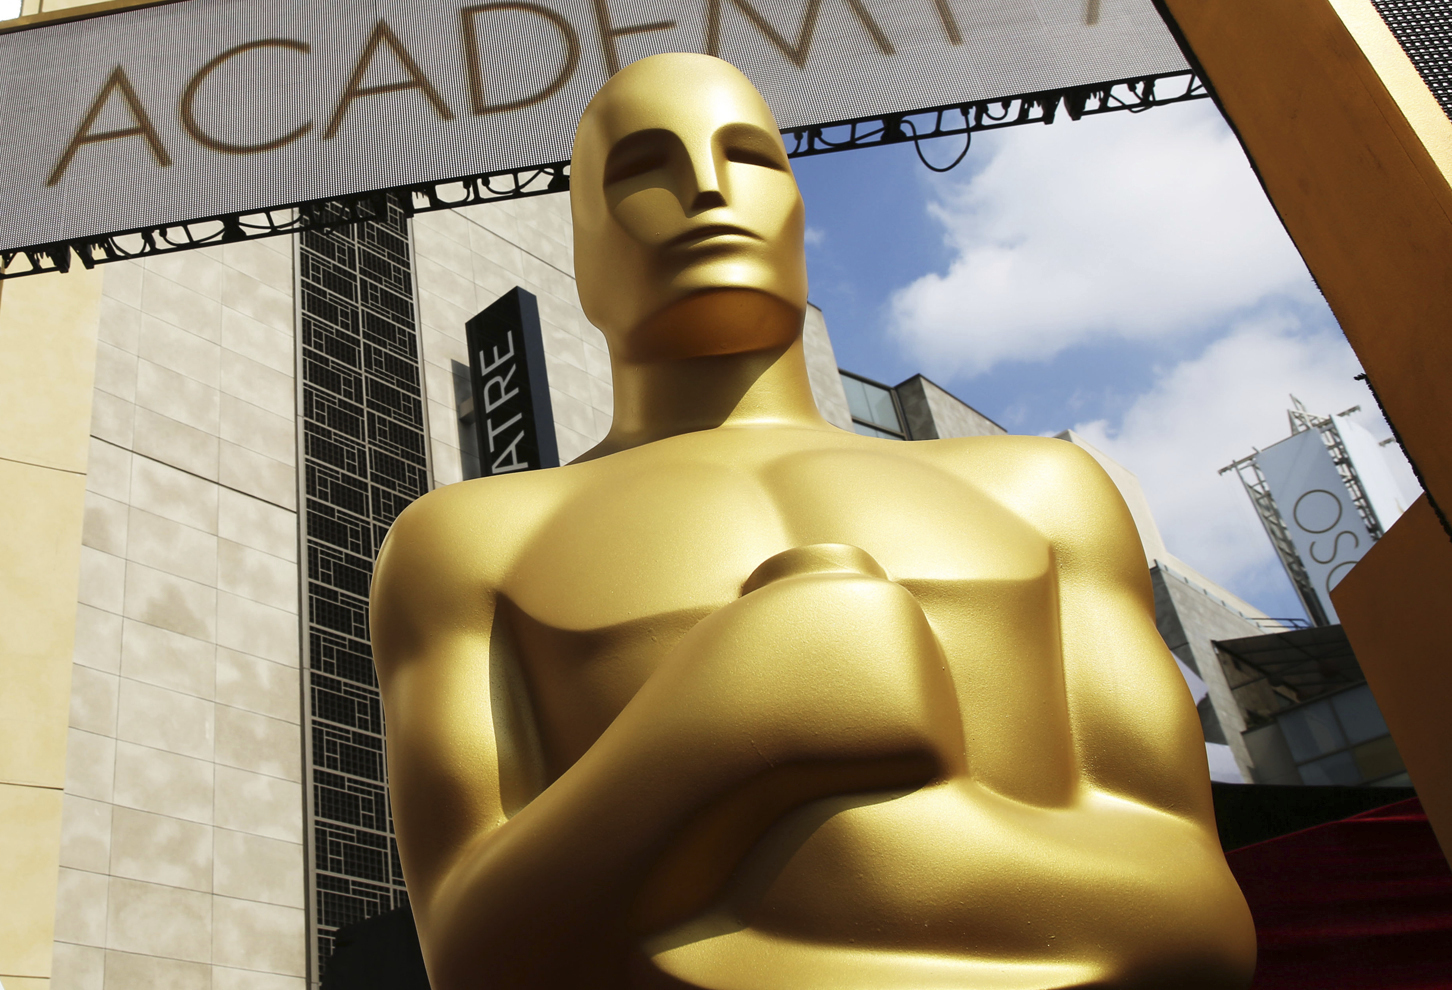 The Academy's decision to postpone the Oscars' newest category comes after widespread debate over the merits of